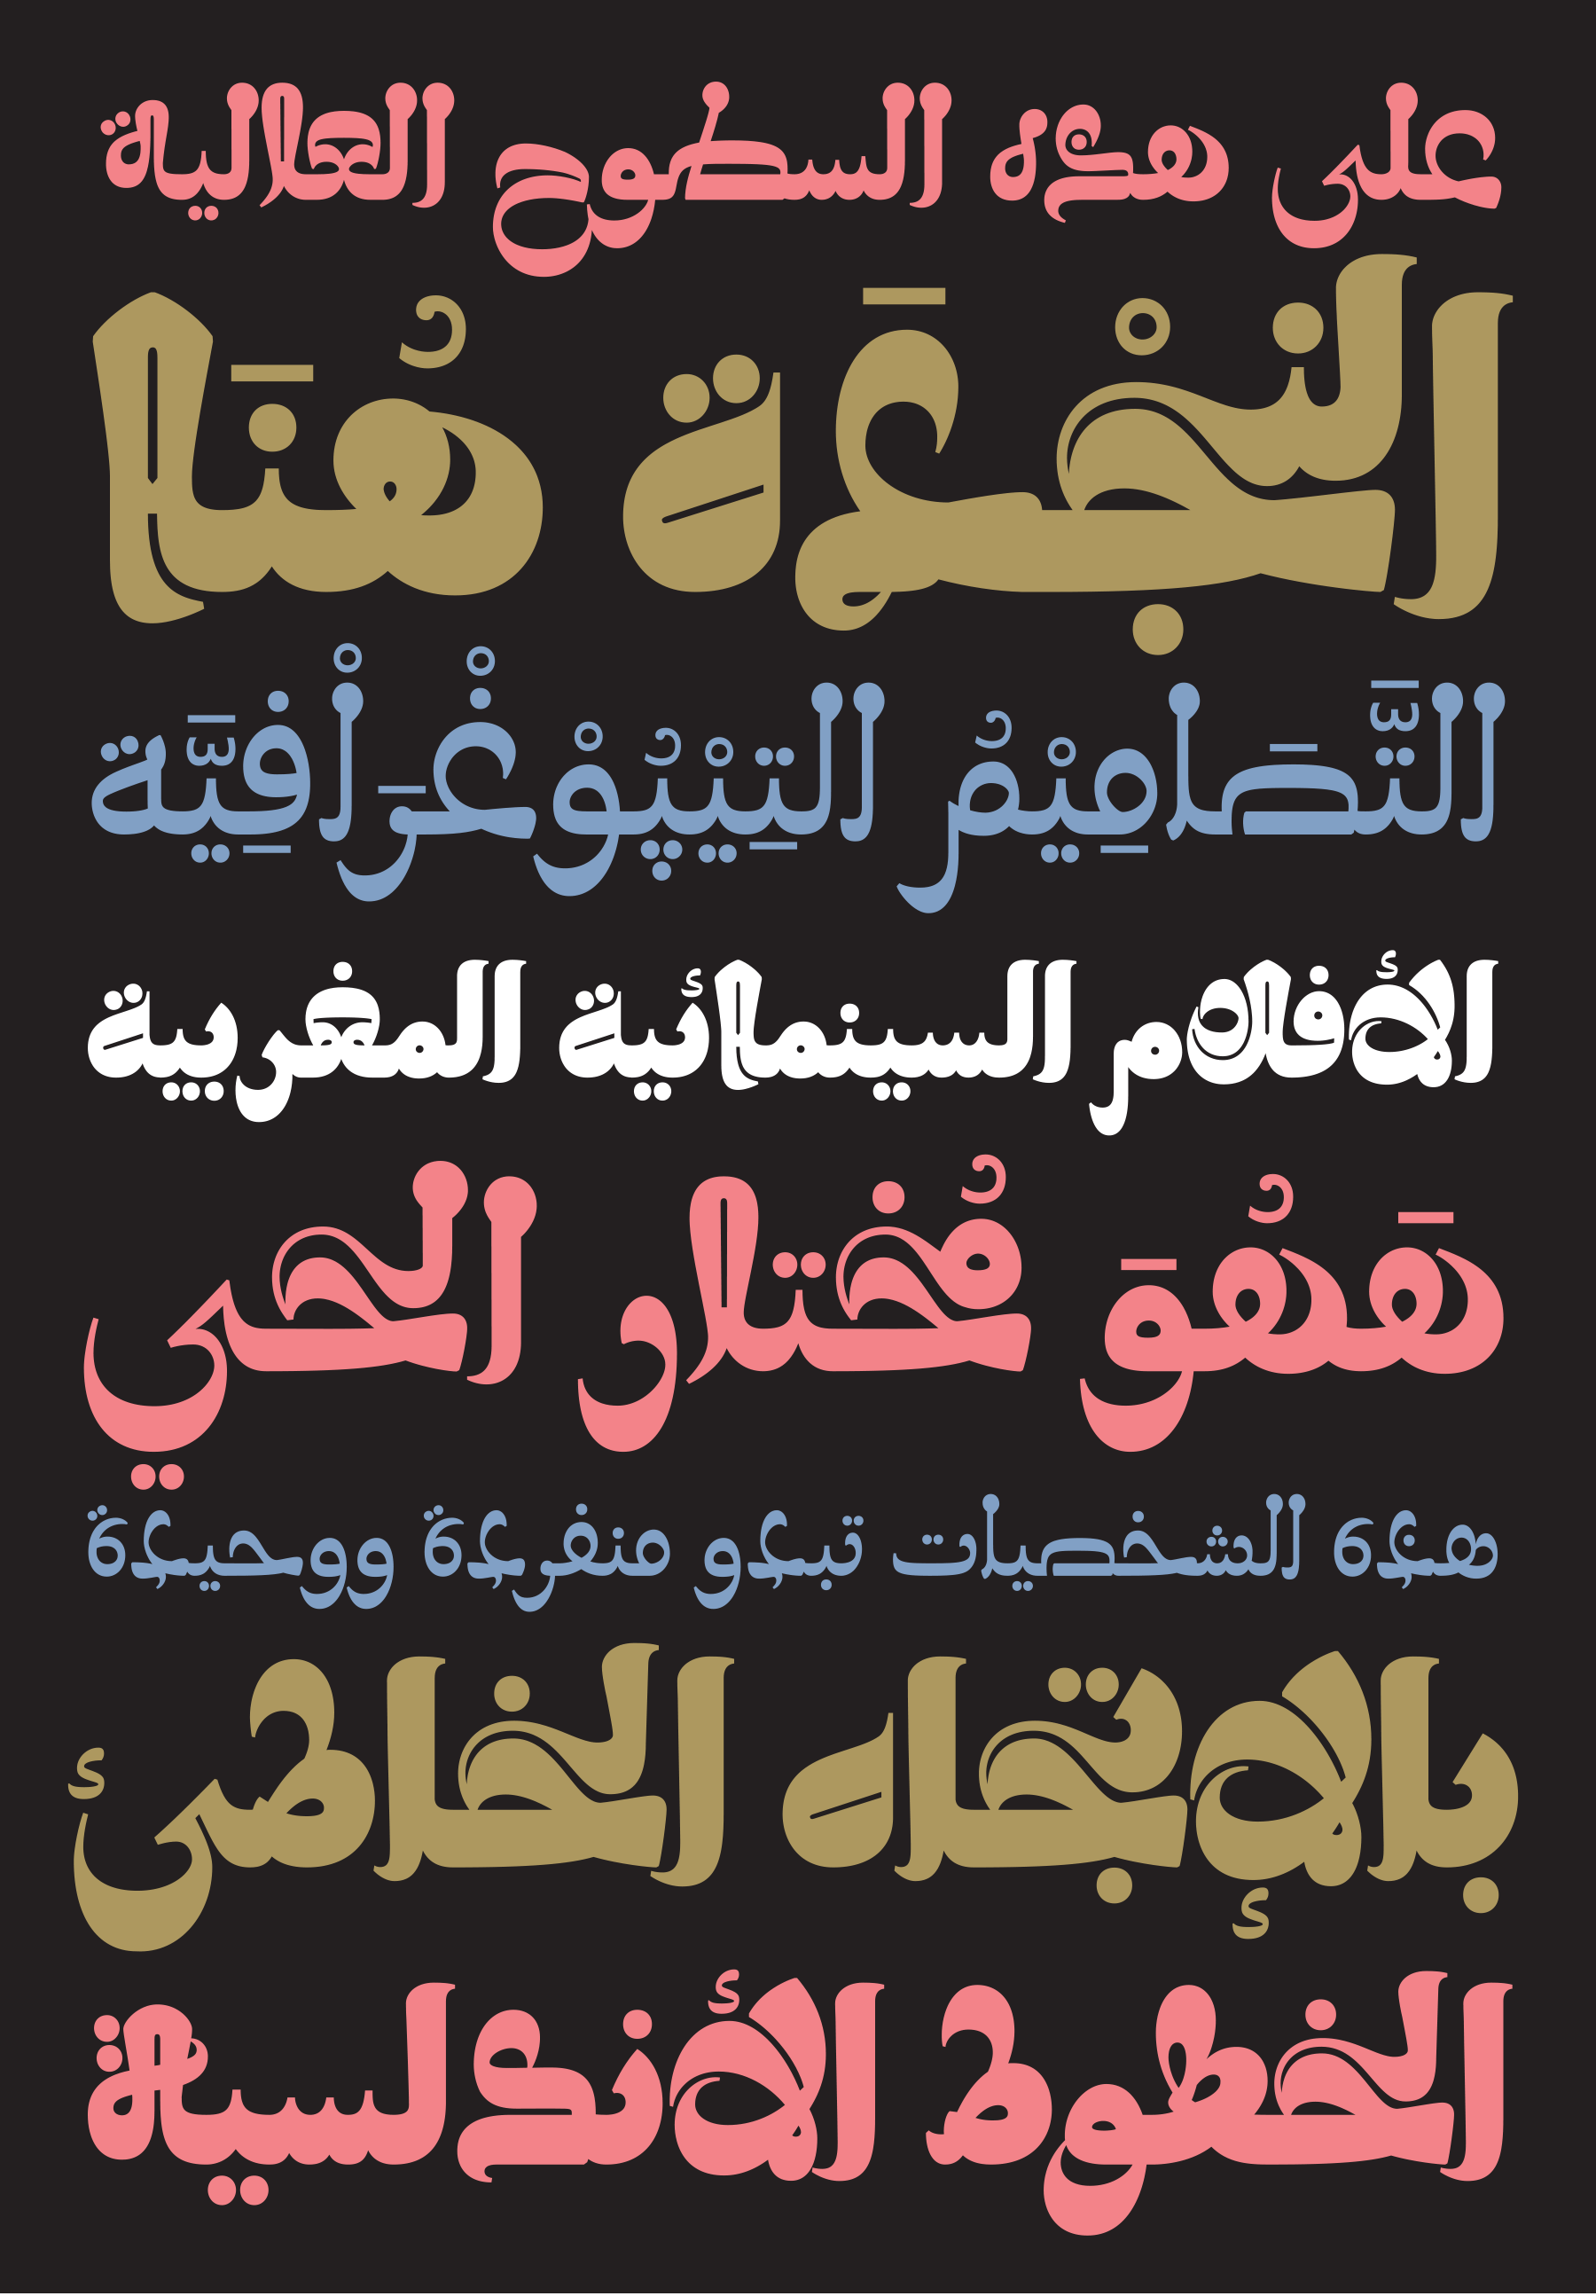 Retail type design: Qandus, a multi-script type project. Arabic by Kristyan Sarkis